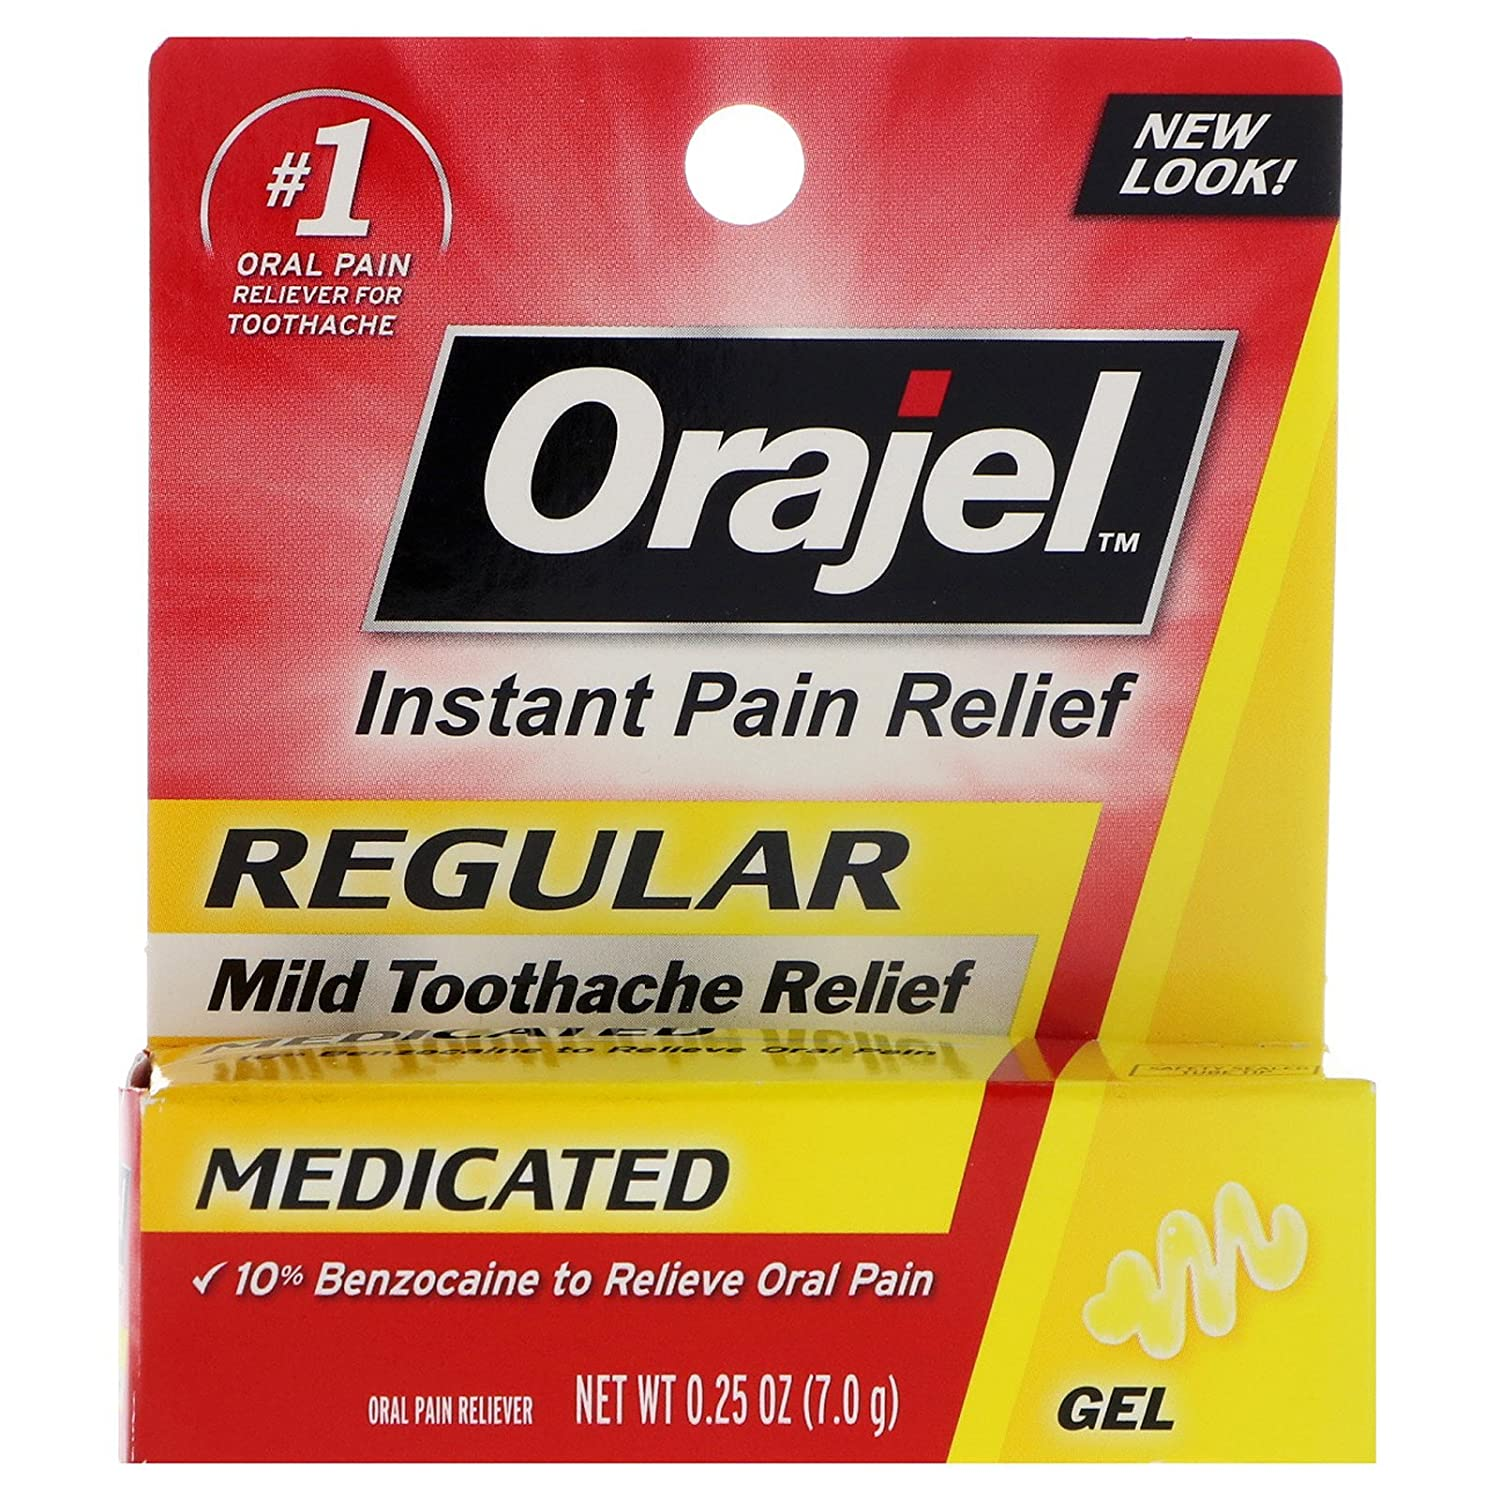 Orajel Regular Strength Toothache Pain Relief Gel, 0.25 oz CHURCH & DWIGHT CO INC